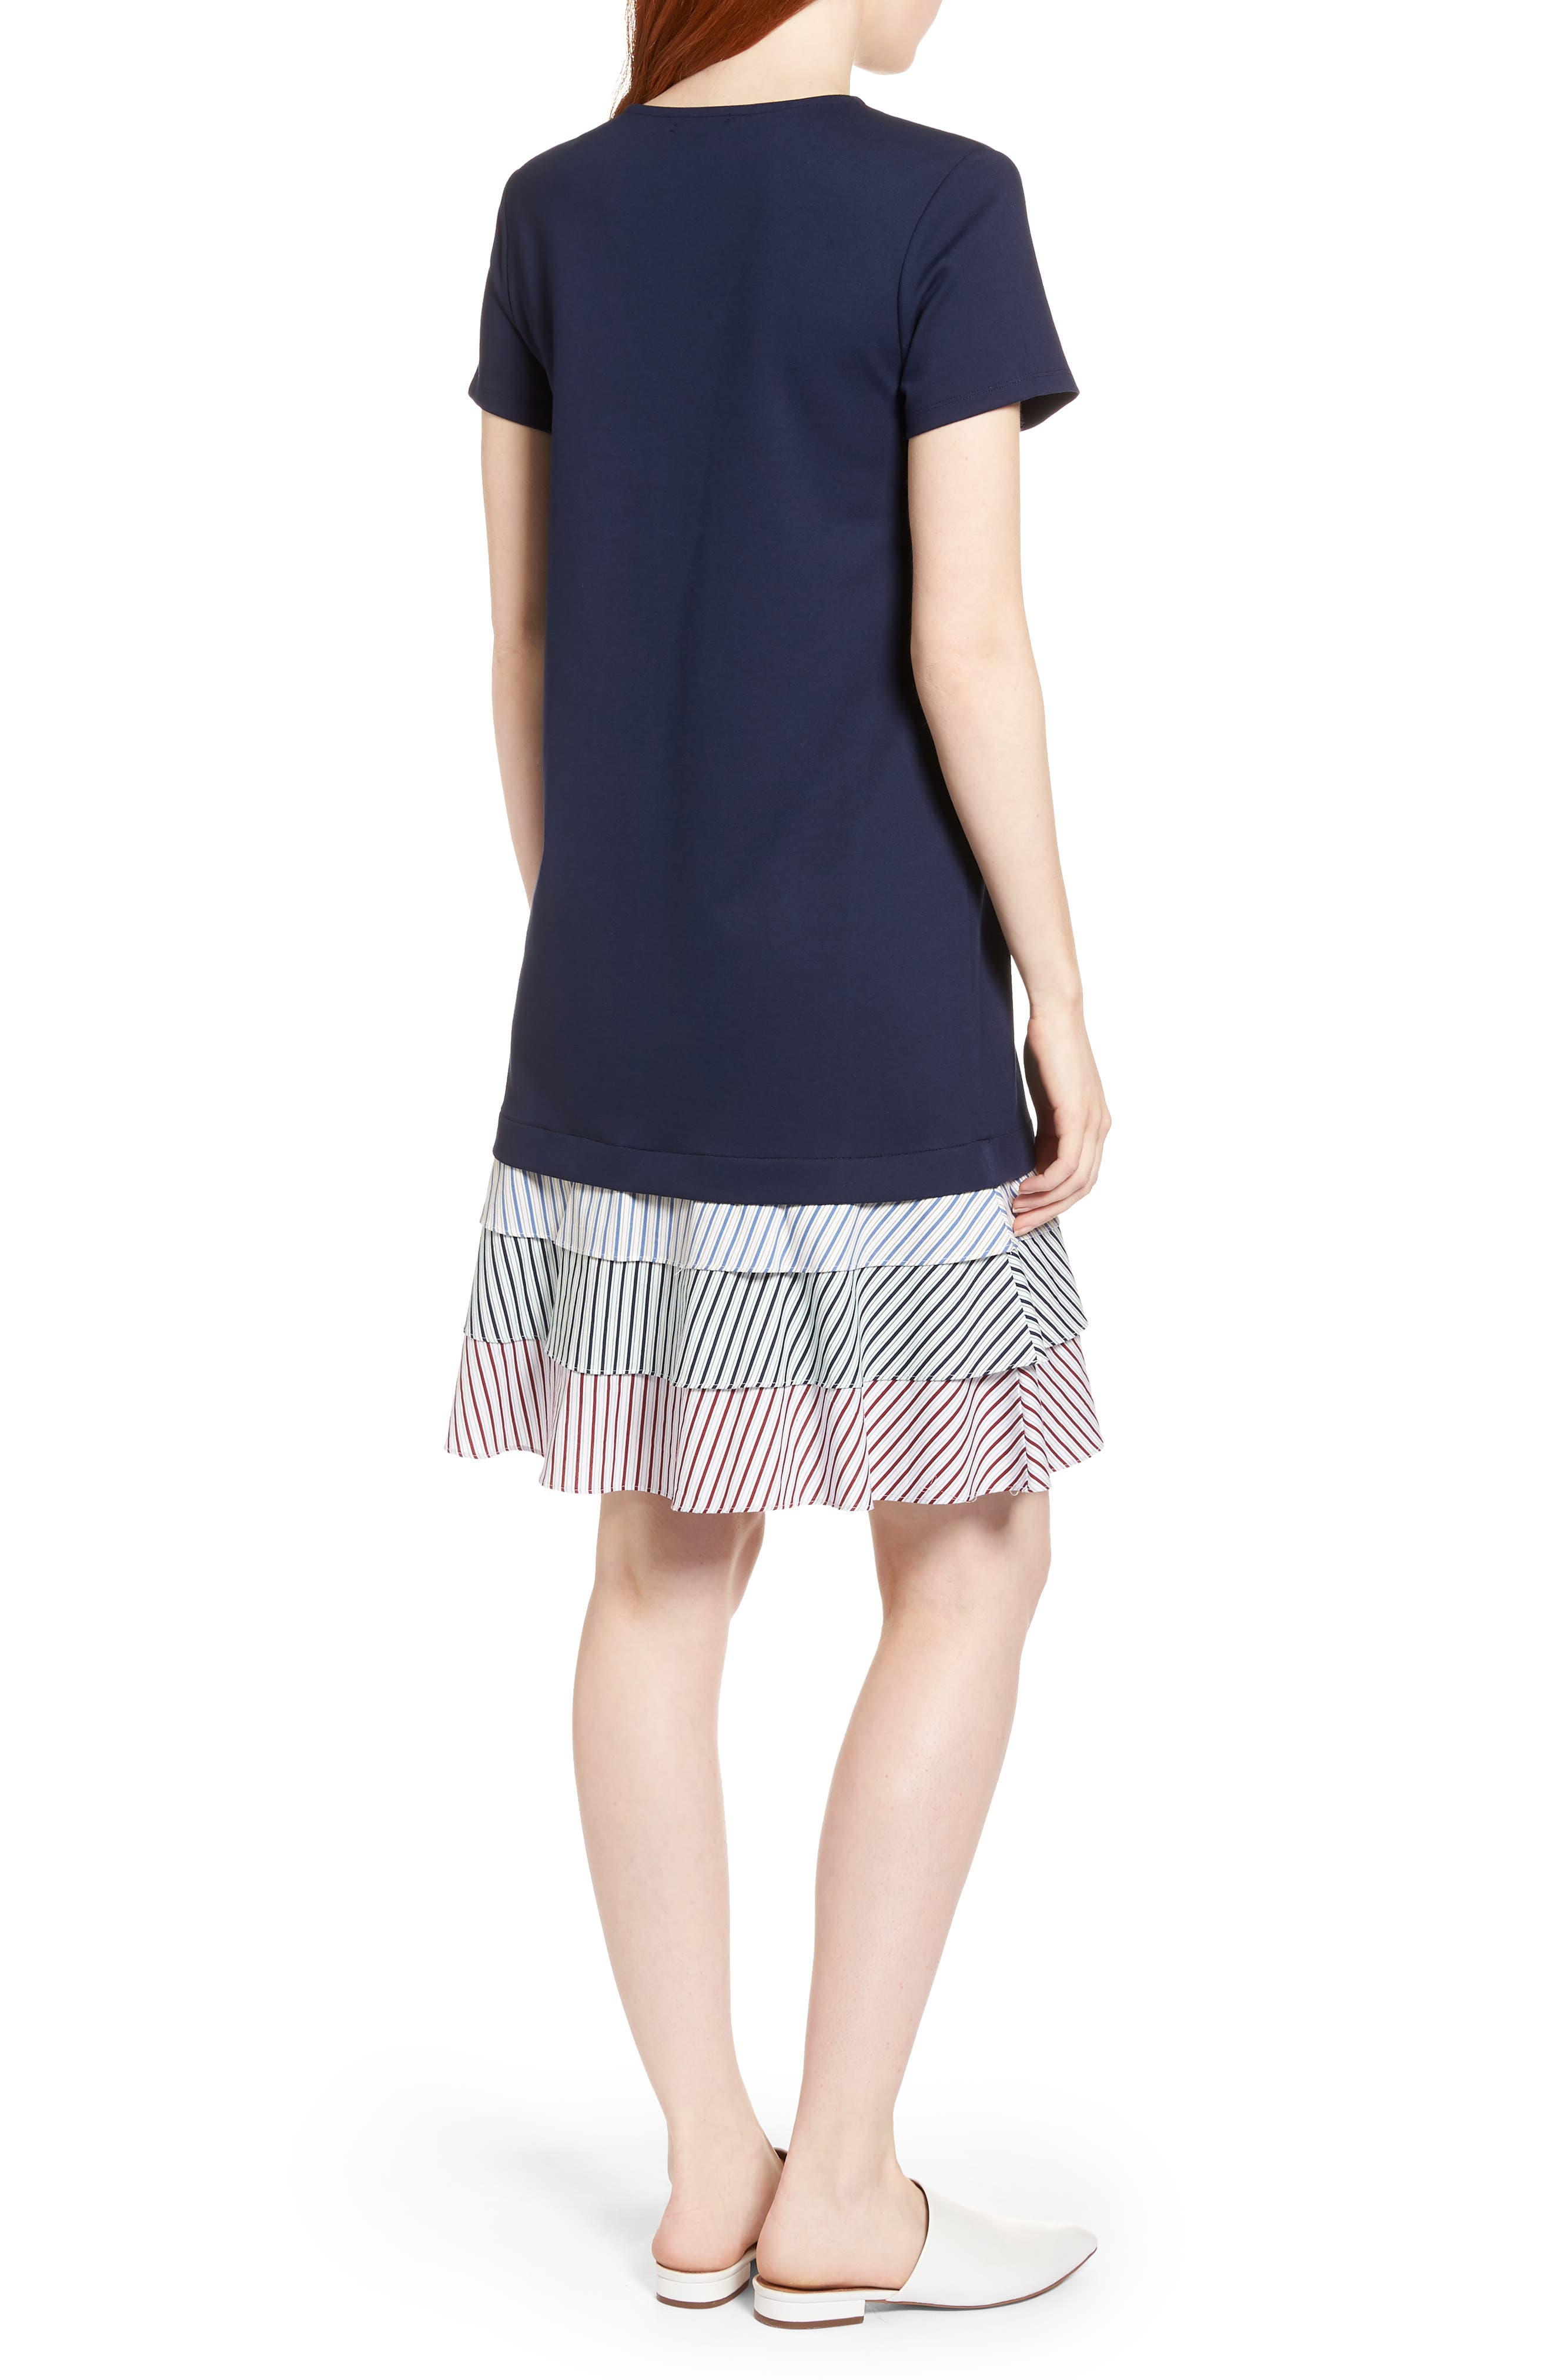 Ruffle Hem Knit Dress,                             Alternate thumbnail 2, color,                             Navy Peacoat